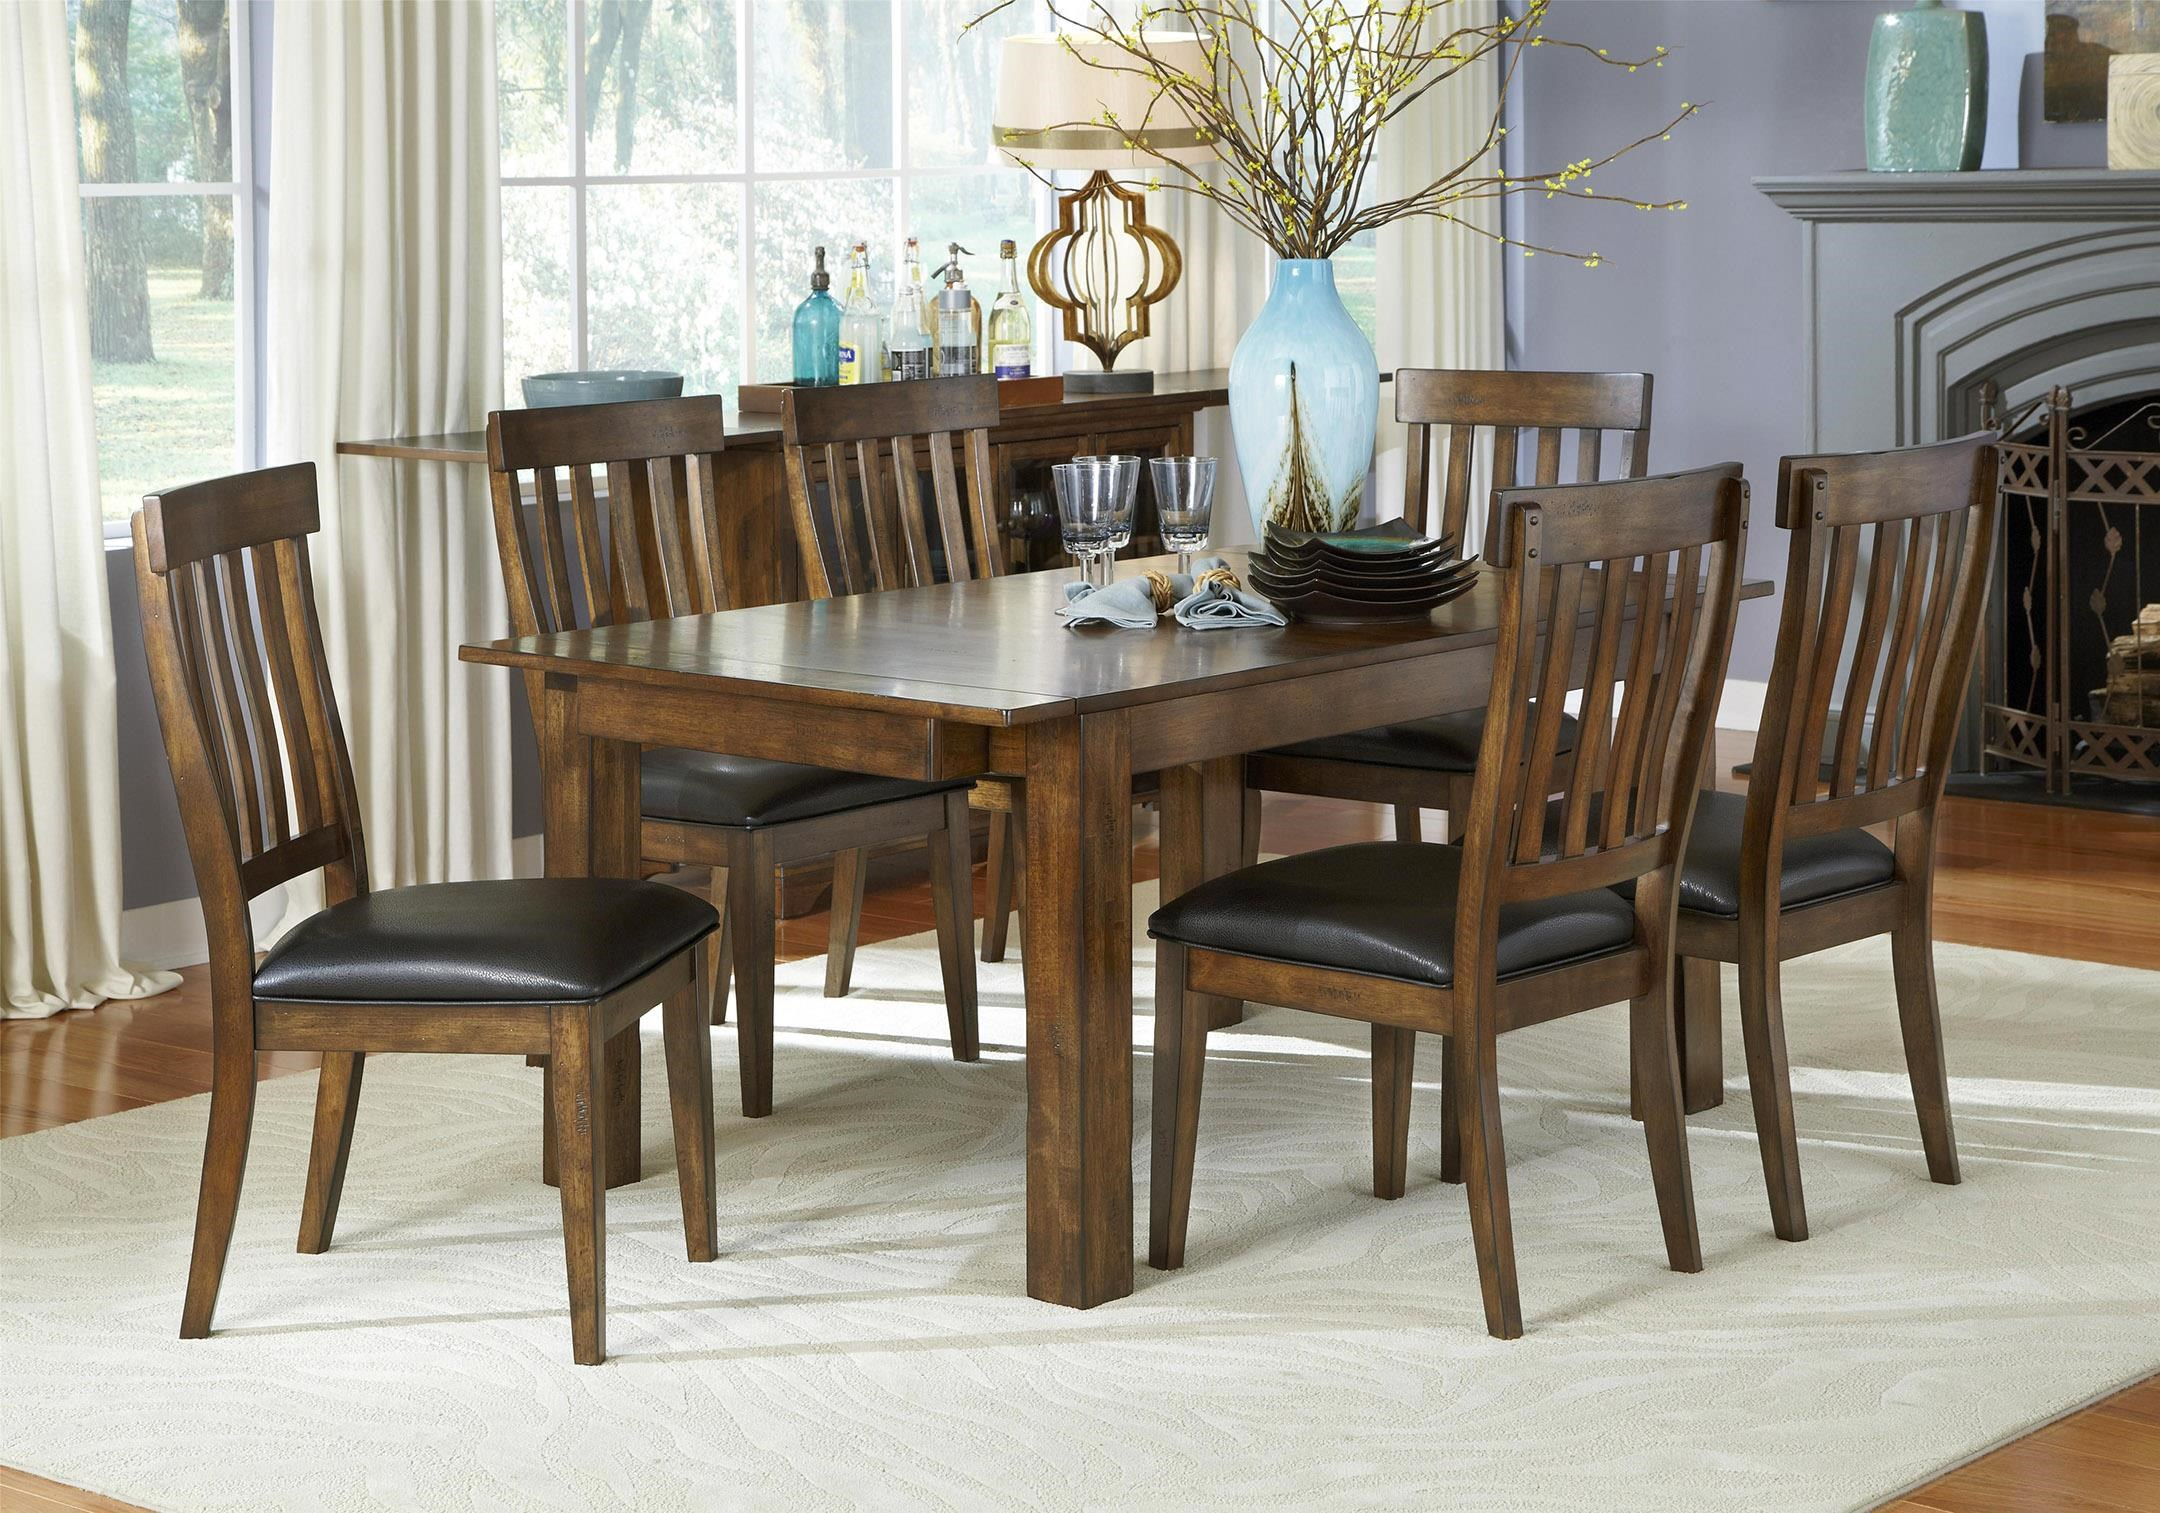 Winchester 5-Piece Tables and Chairs Set at Ruby Gordon Home